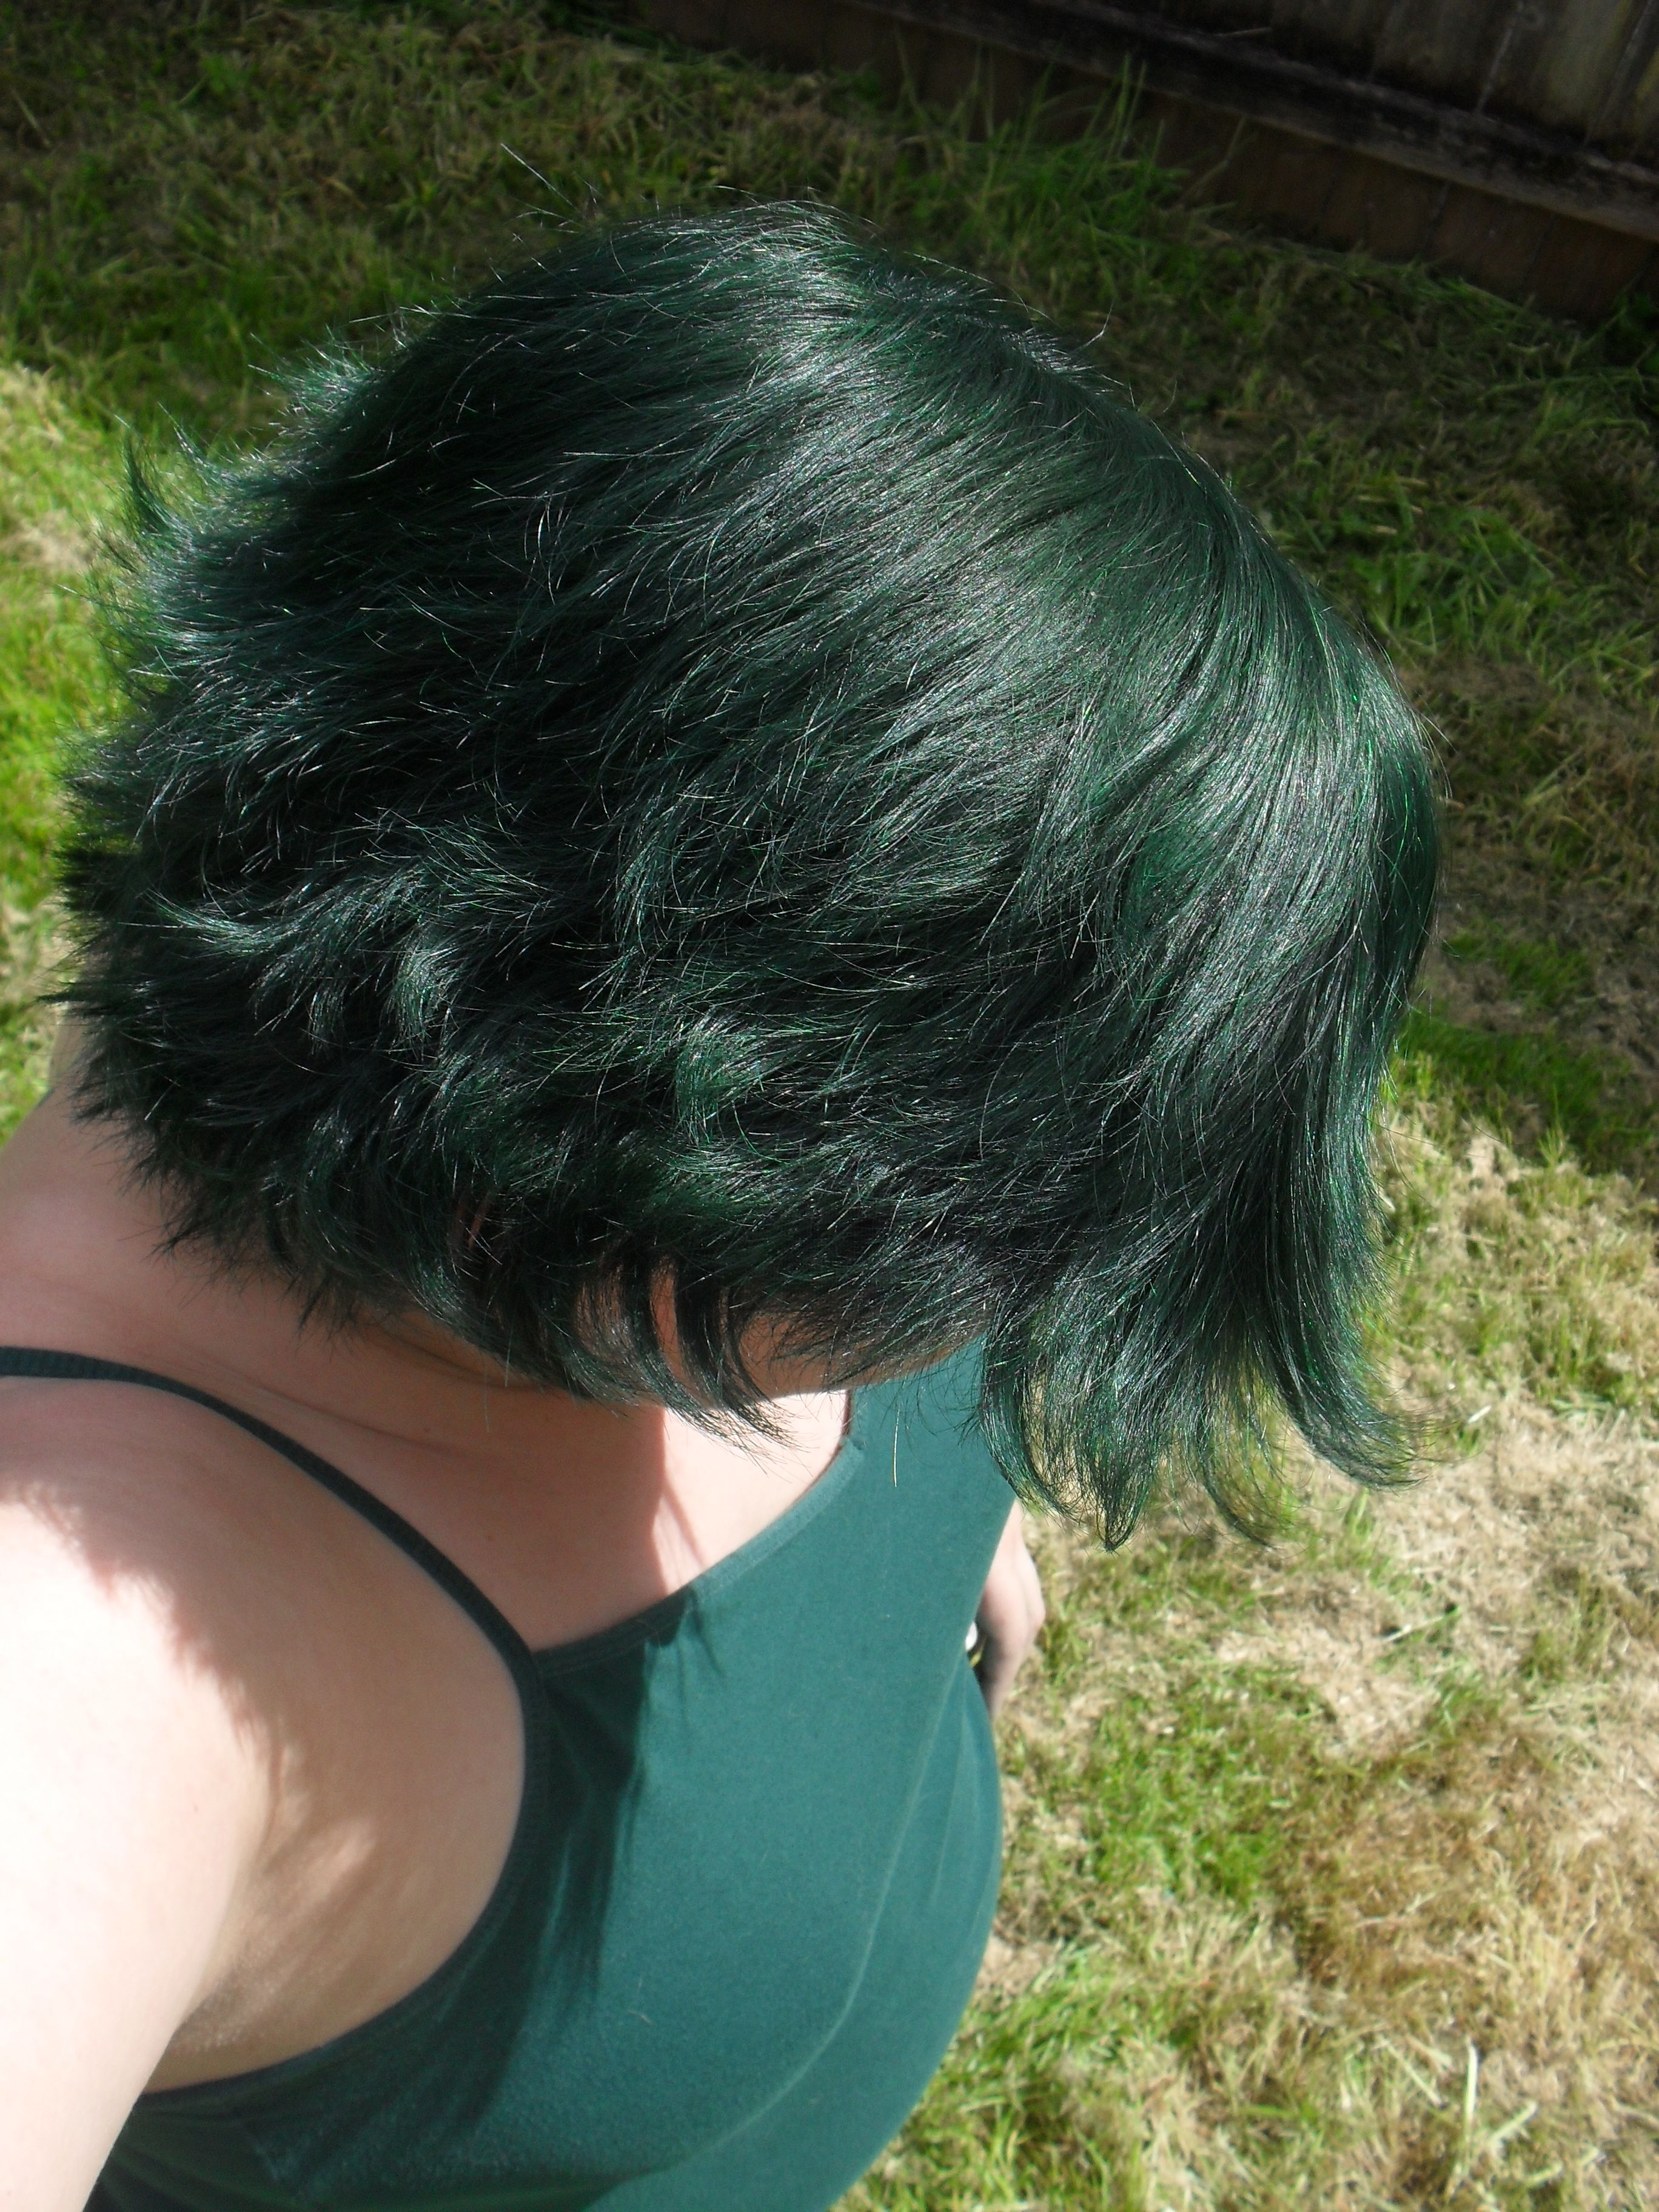 Manic Panic Green Envy Used On Unbleached Level 3 Brown Hair Basically The Best Thing Ever Pretty Hairstyles Green Hair Manic Panic Hair Dye